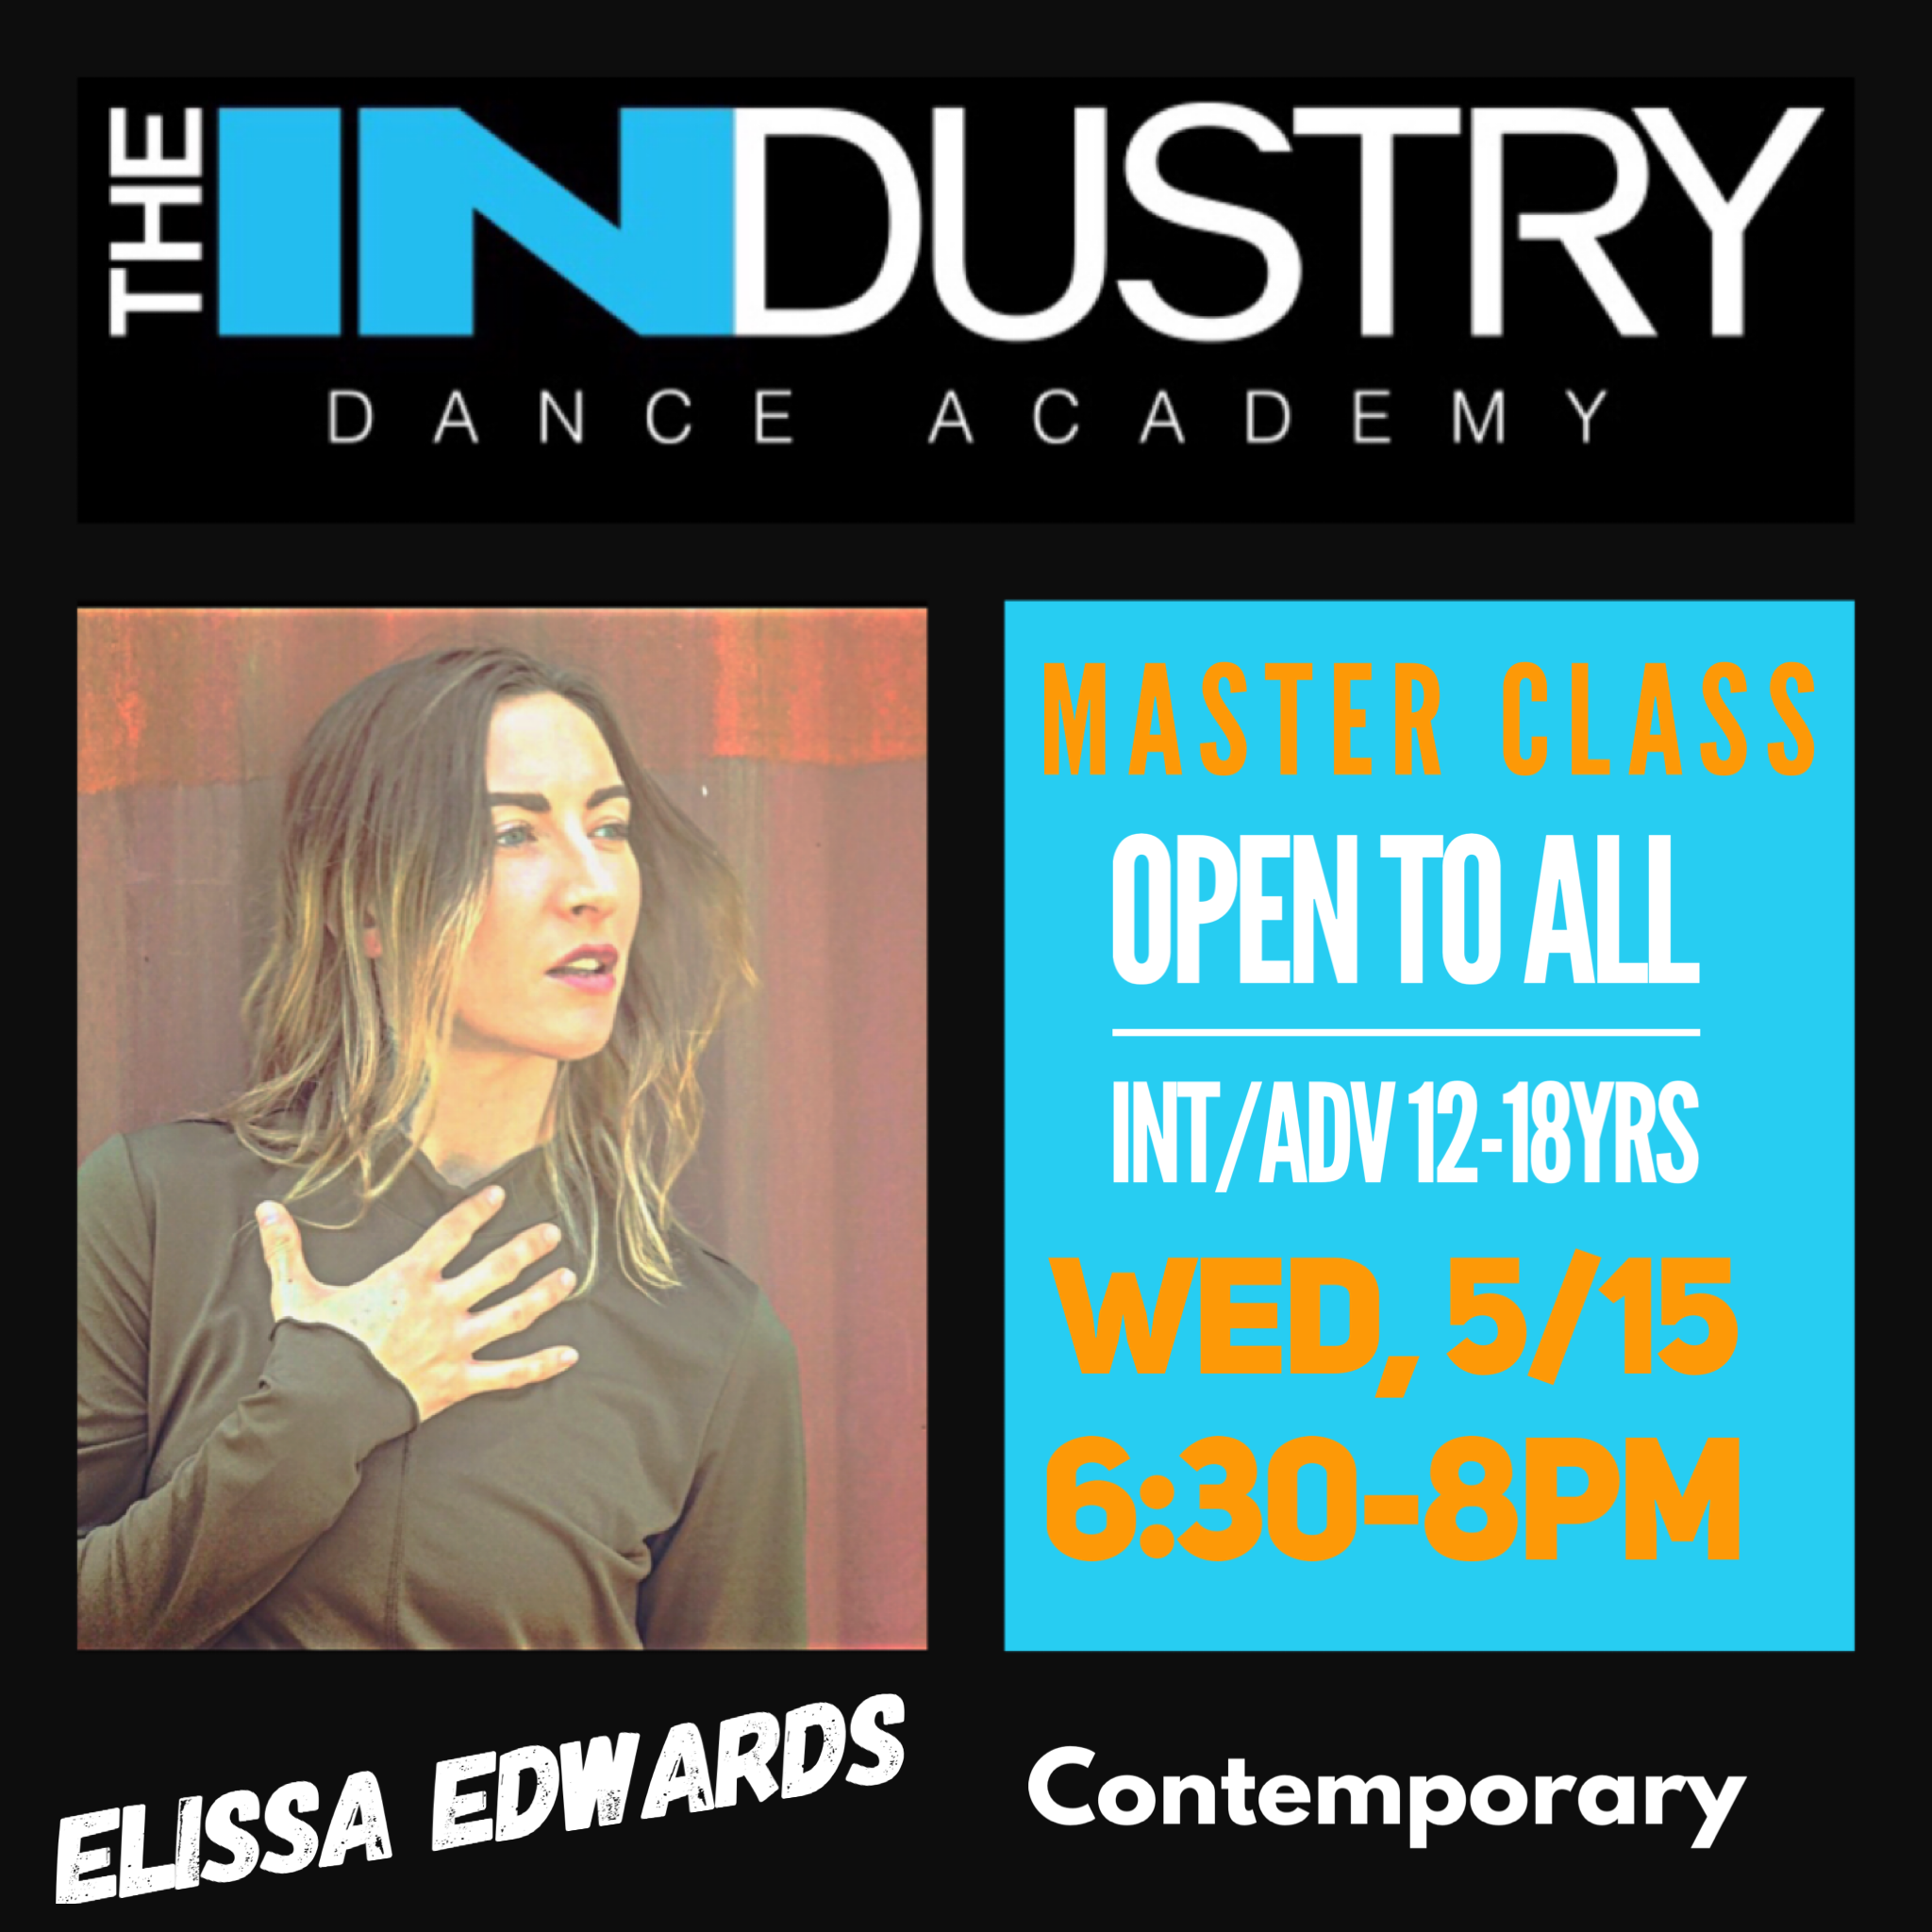 May 15th-6:30-8pm Contemporary with Elissa Edwards $25